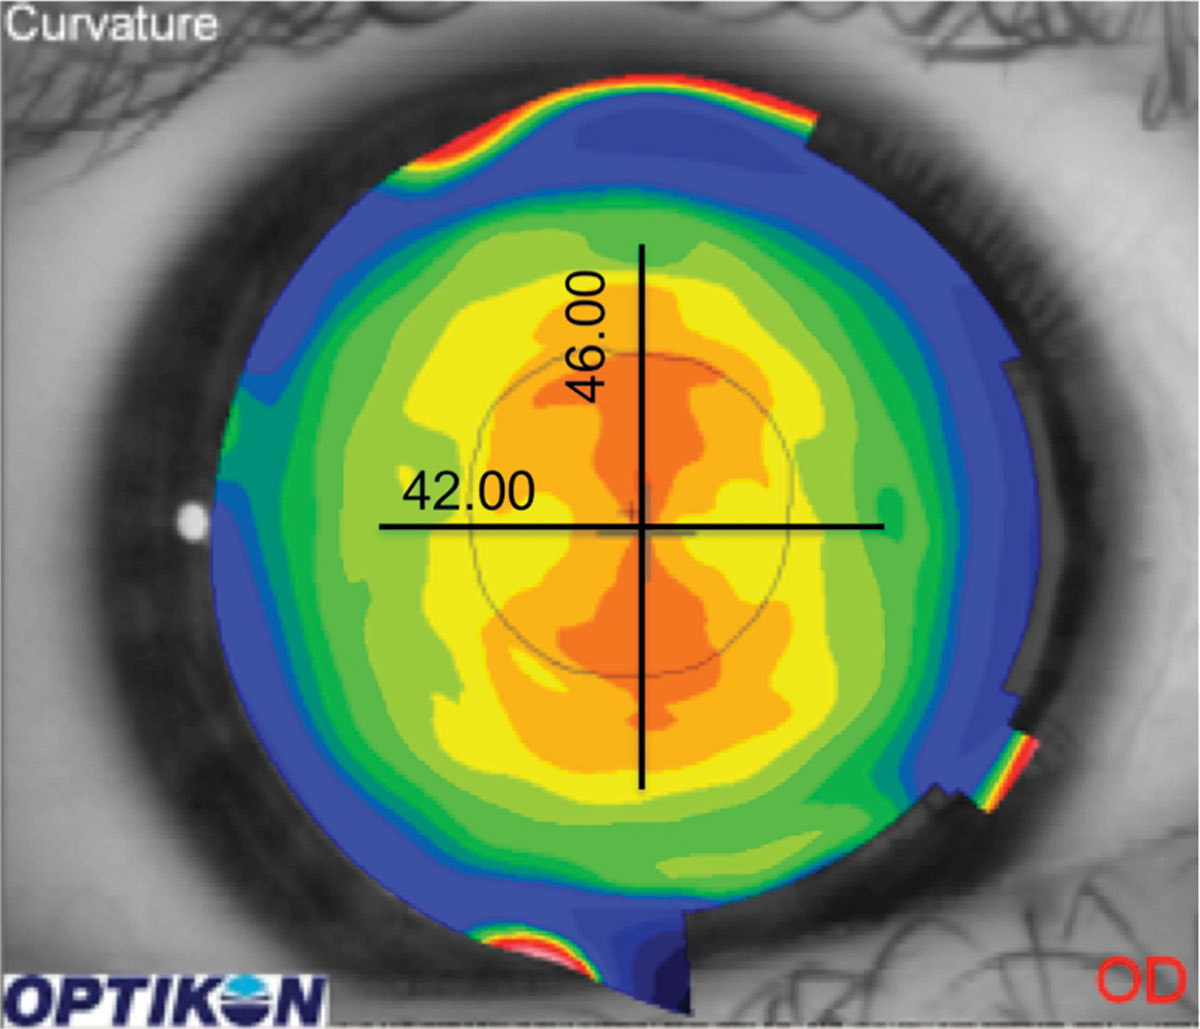 Centrally located astigmatism can often be fit with a spherical GP lens.